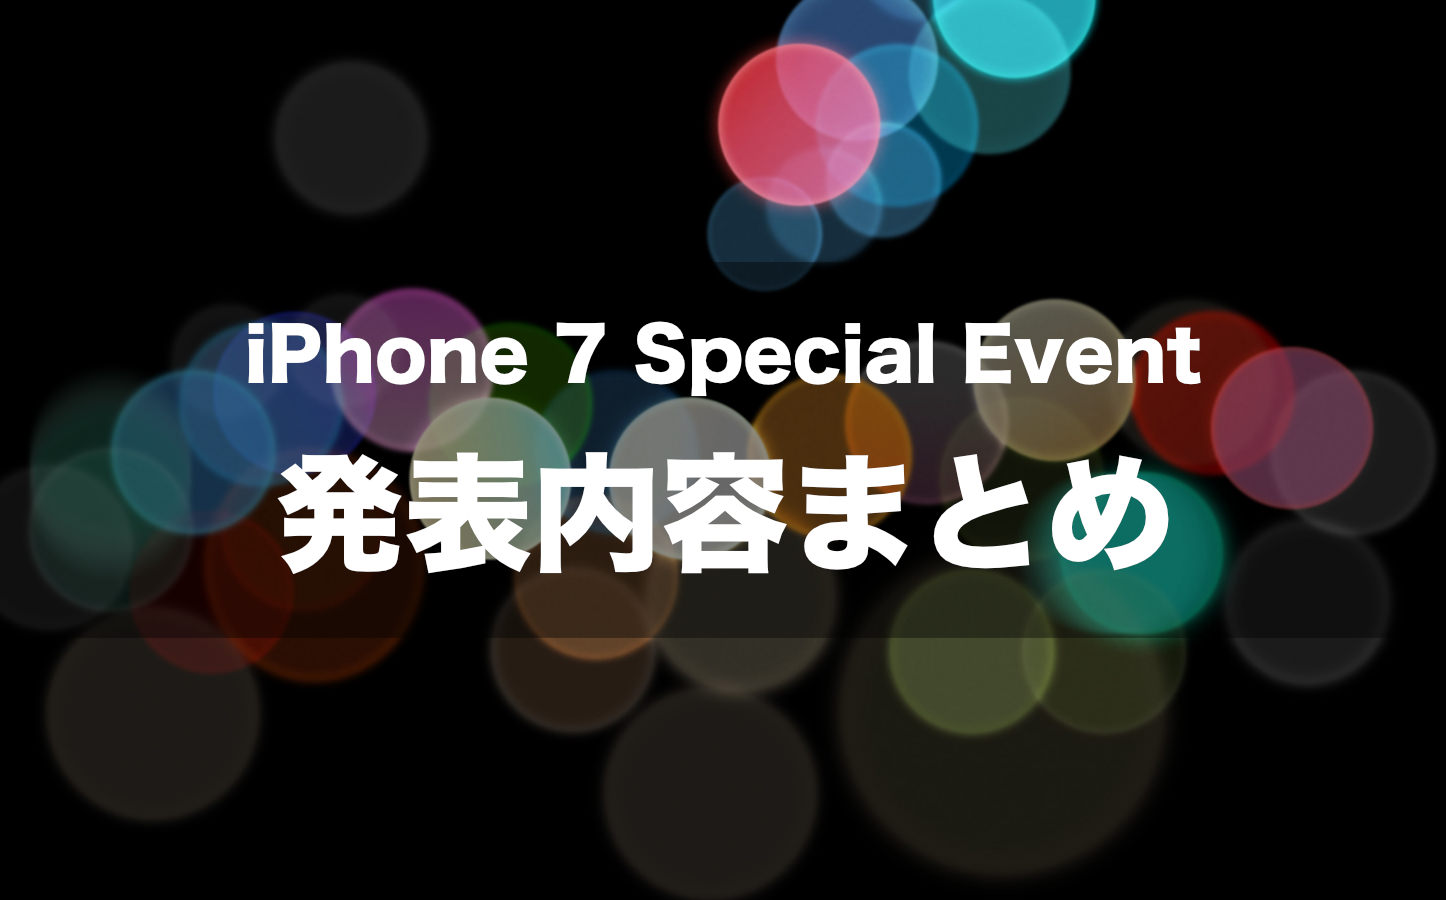 Iphone 7 special event all